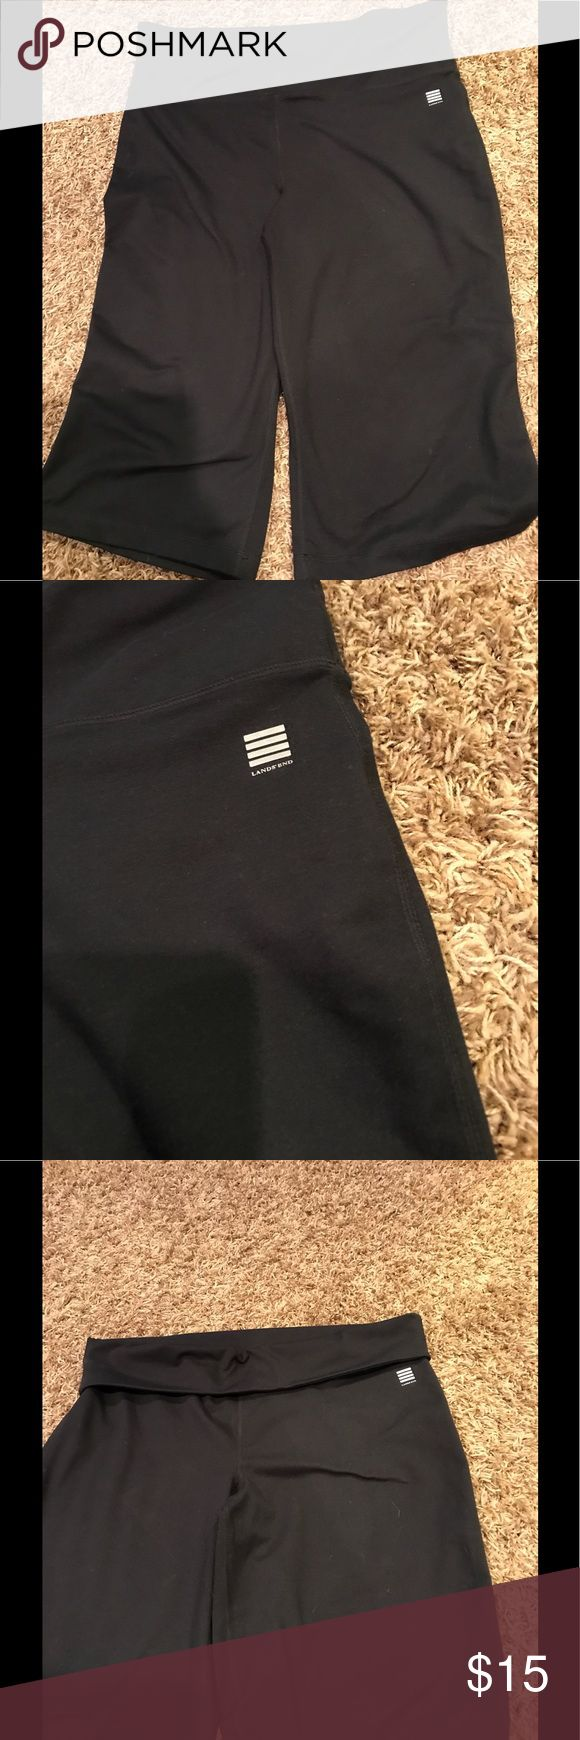 Lands End Large (14/16) athletic Capri Pants Lands End athletic Capri Pants  Size large (14/16)  Pants are black and have a sporty fold over waist band  88% polyester And 12% spandex  Pants are in excellent like new condition lands End Pants Track Pants & Joggers